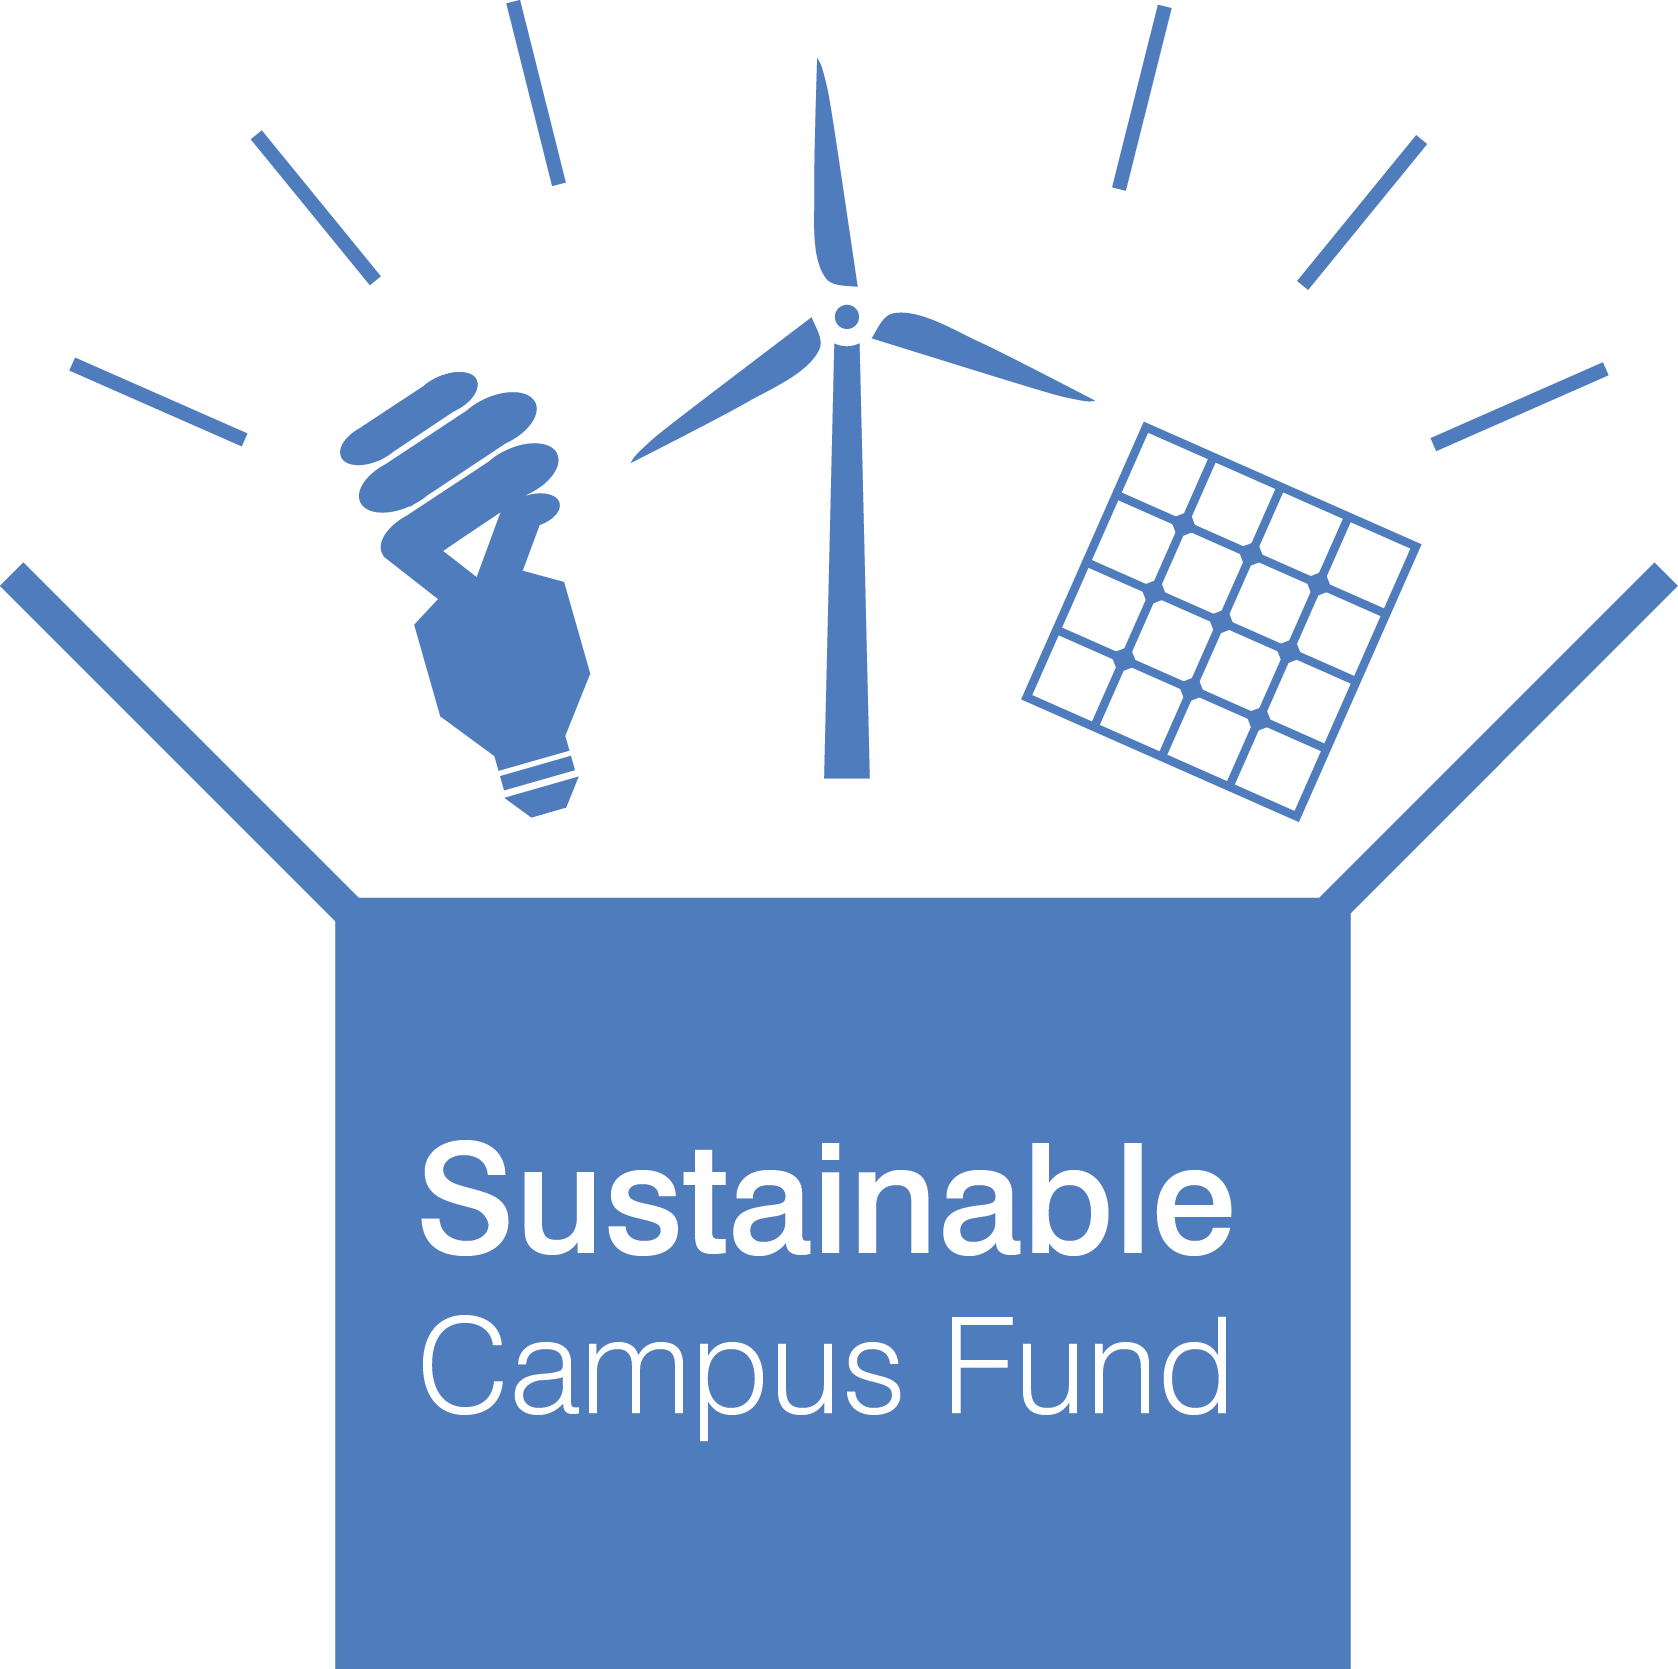 Sustainable campus fund: box with wind turbine, solar panel and light bulb bursting out